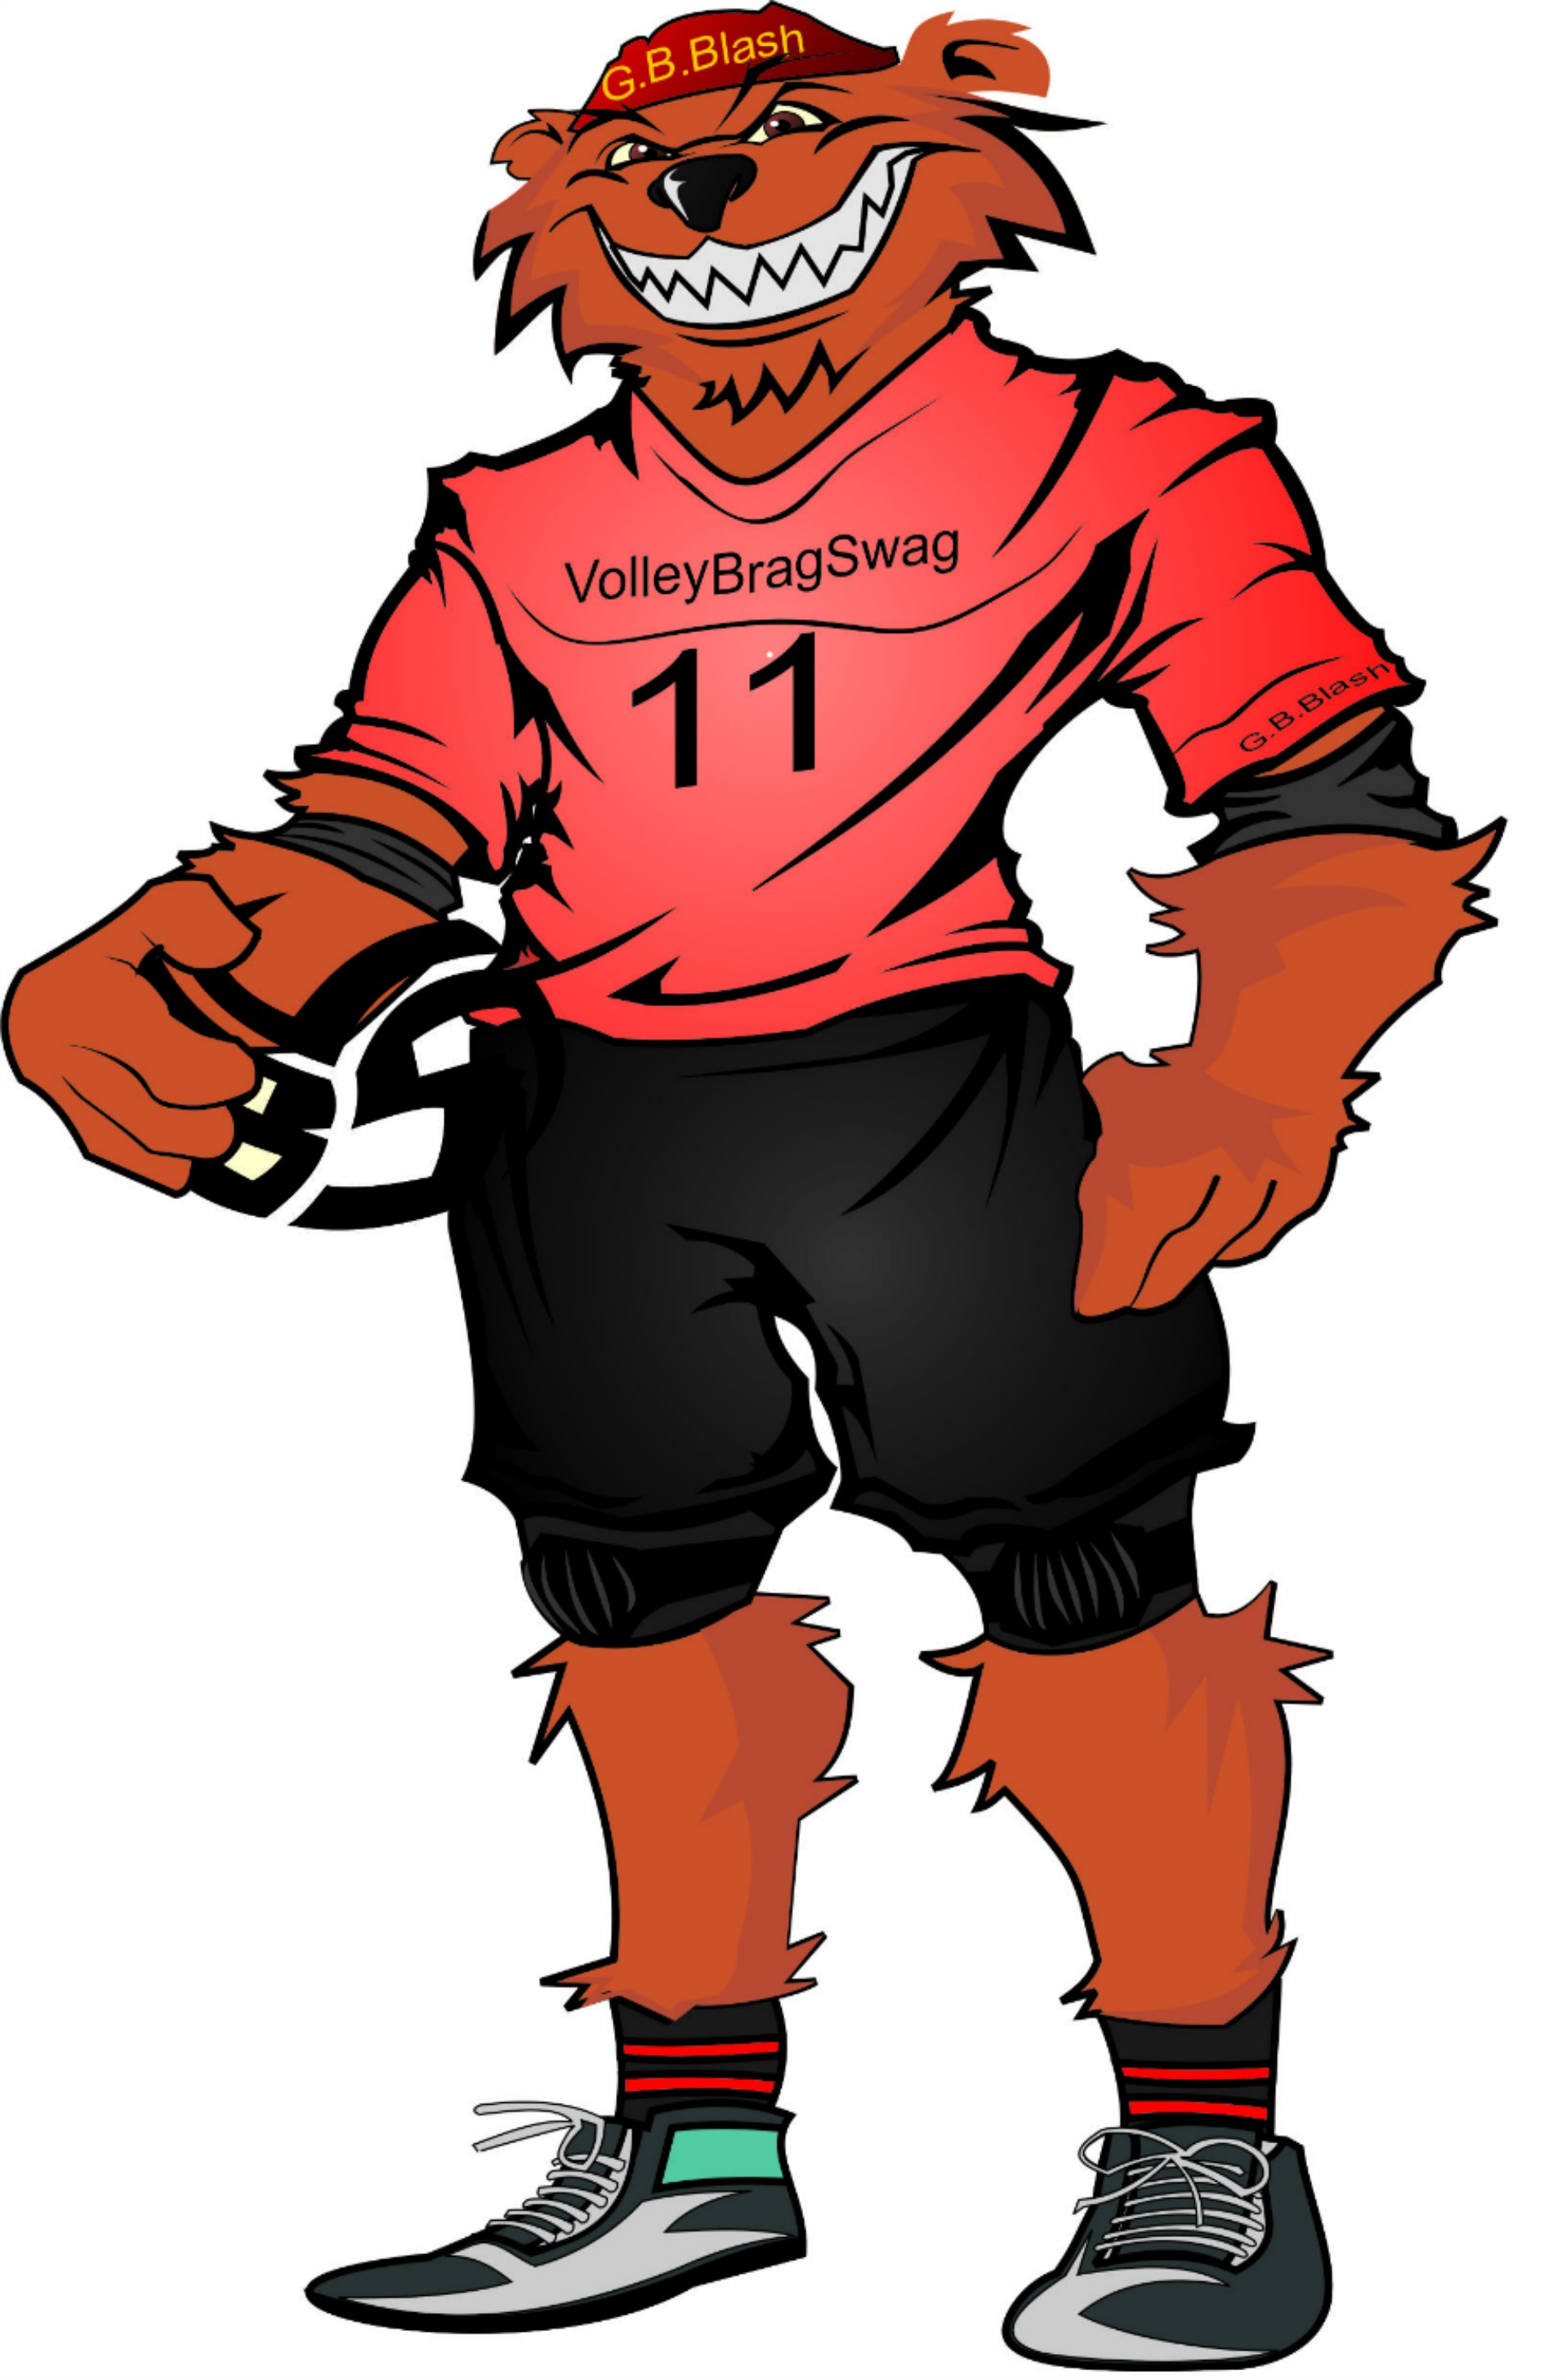 Volleybragswag Coloring Book For Kids With Bear Coloring Pages